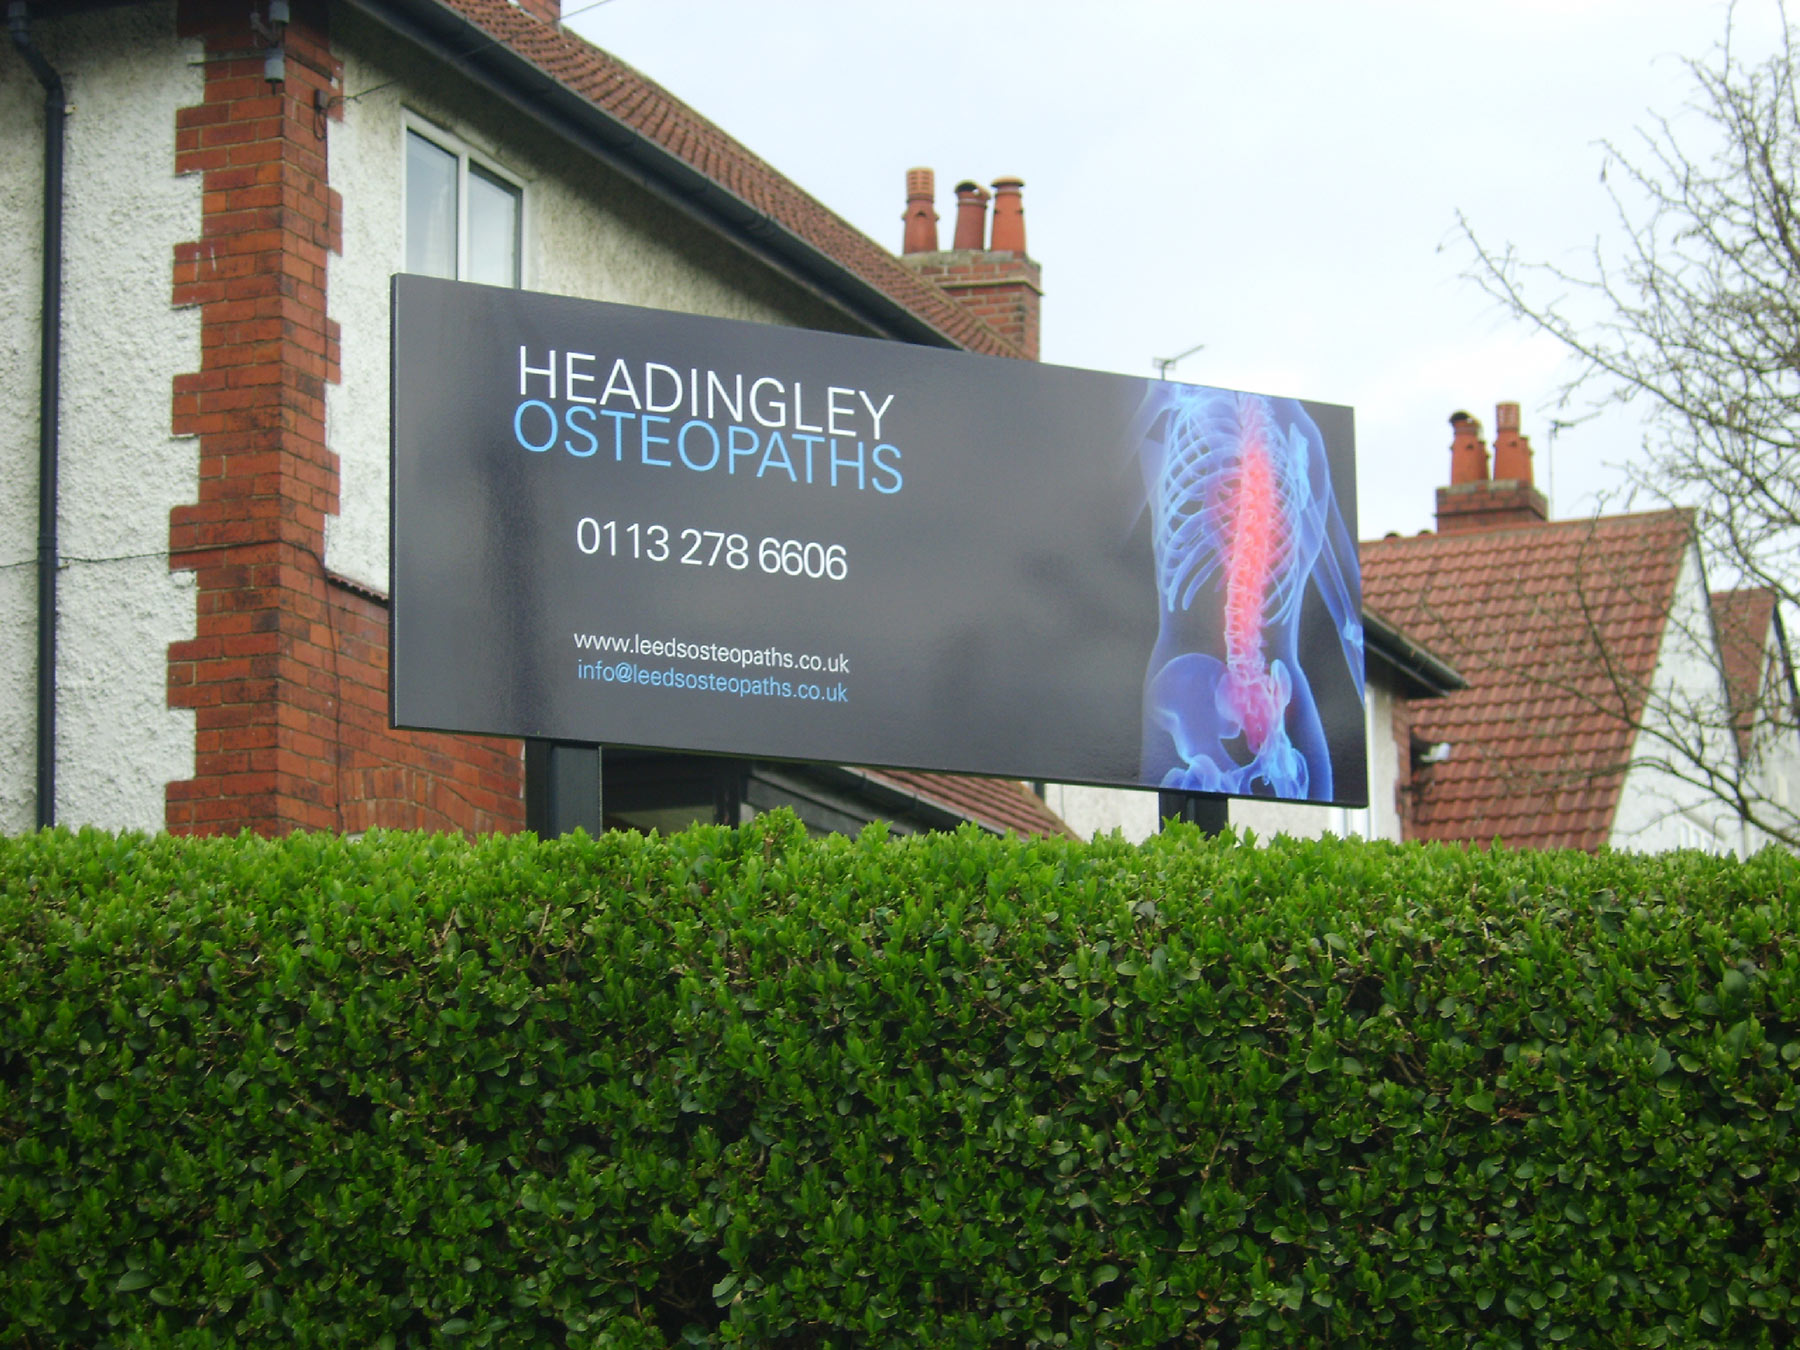 Headingley Osteopaths post mounted signs from Valley Signs